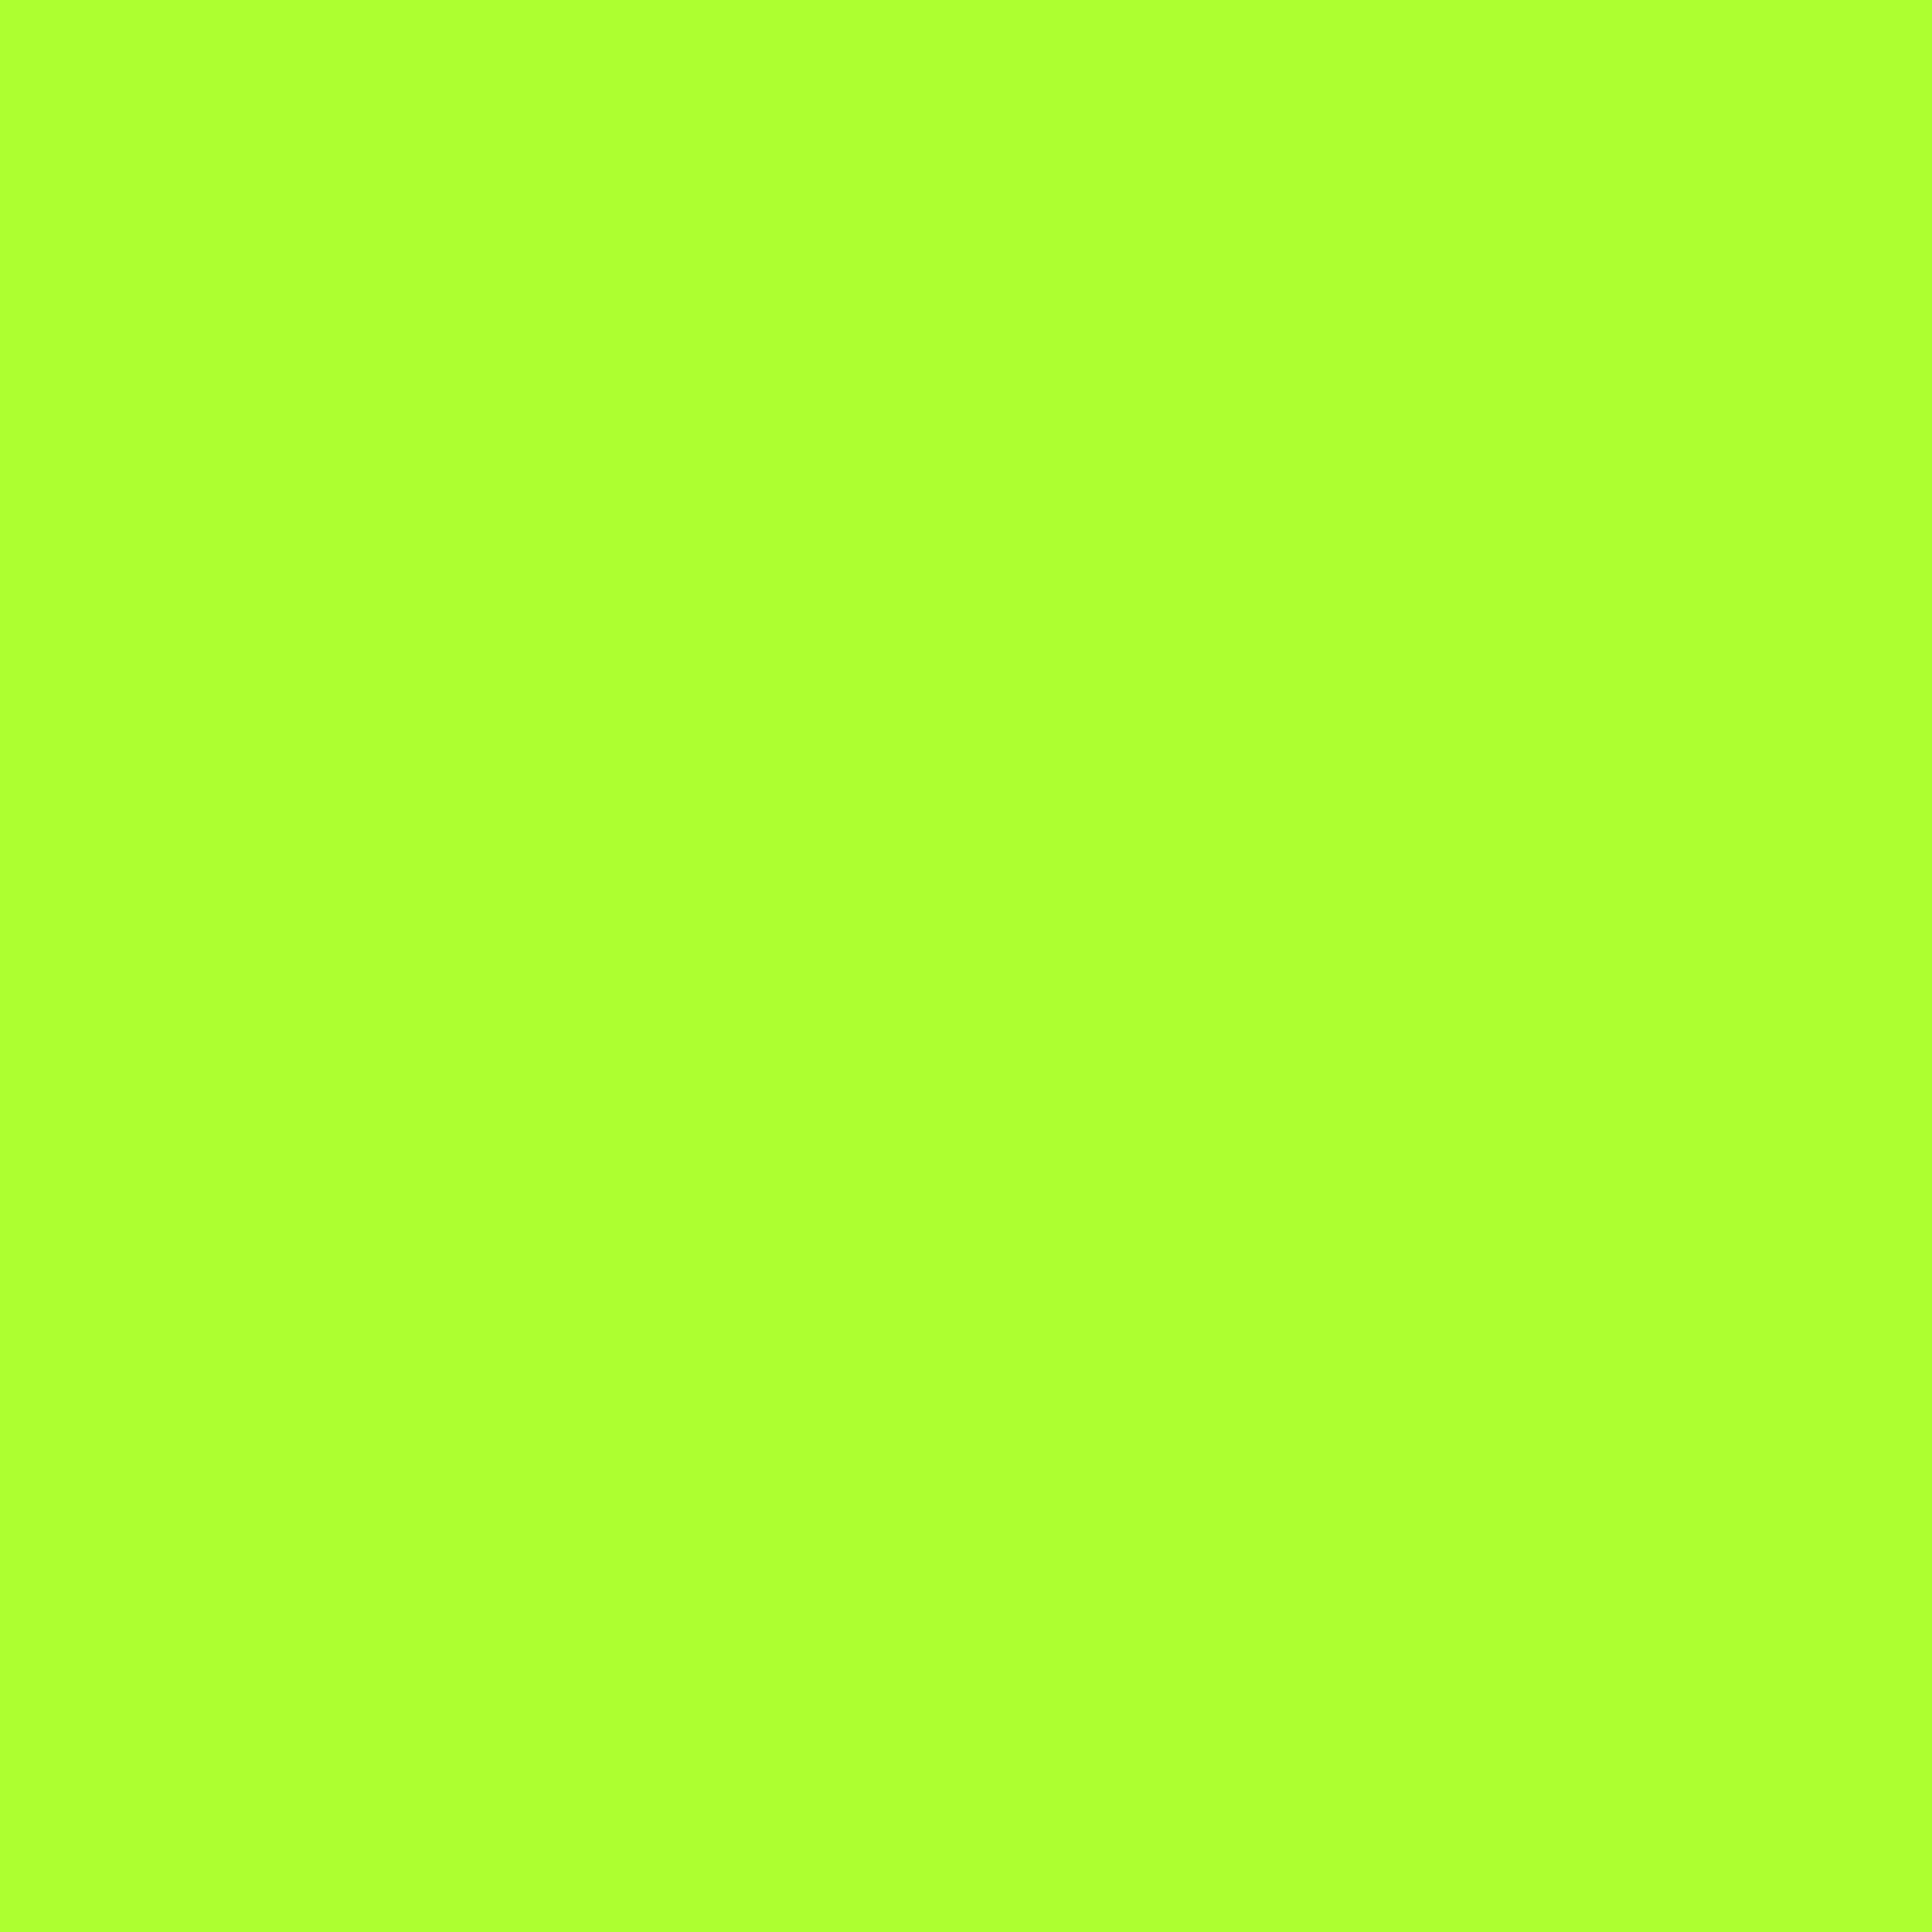 2732x2732 Green-yellow Solid Color Background